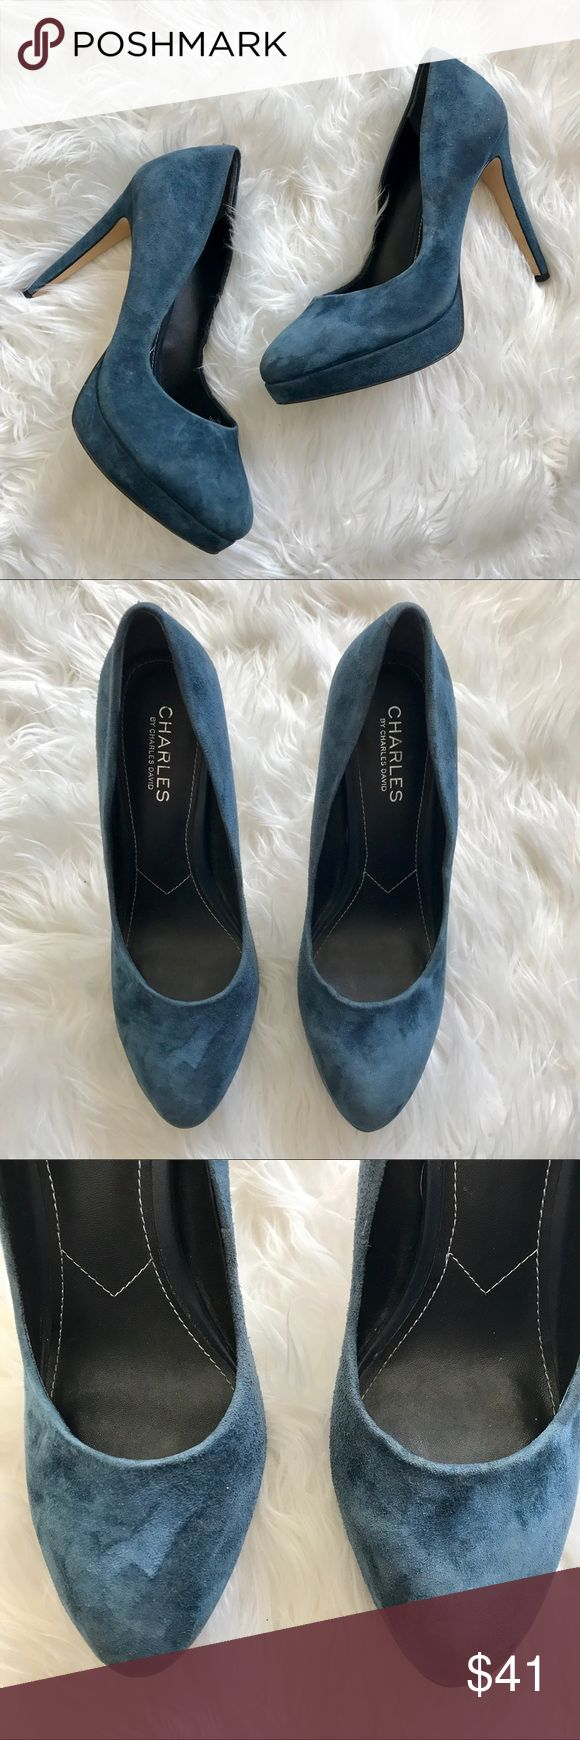 CHARLES DAVID LEATHER SUEDE HEEL NAVY BLUE 8 Classic navy closed toe heel, perfect for everyday wear yet can definitely accessorize these up for a fancy night out! Great condition only used a few times, retails 71$, pair with a palazzo pant and cropped tie blouse with these heels ! 😍 Charles David Shoes Heels